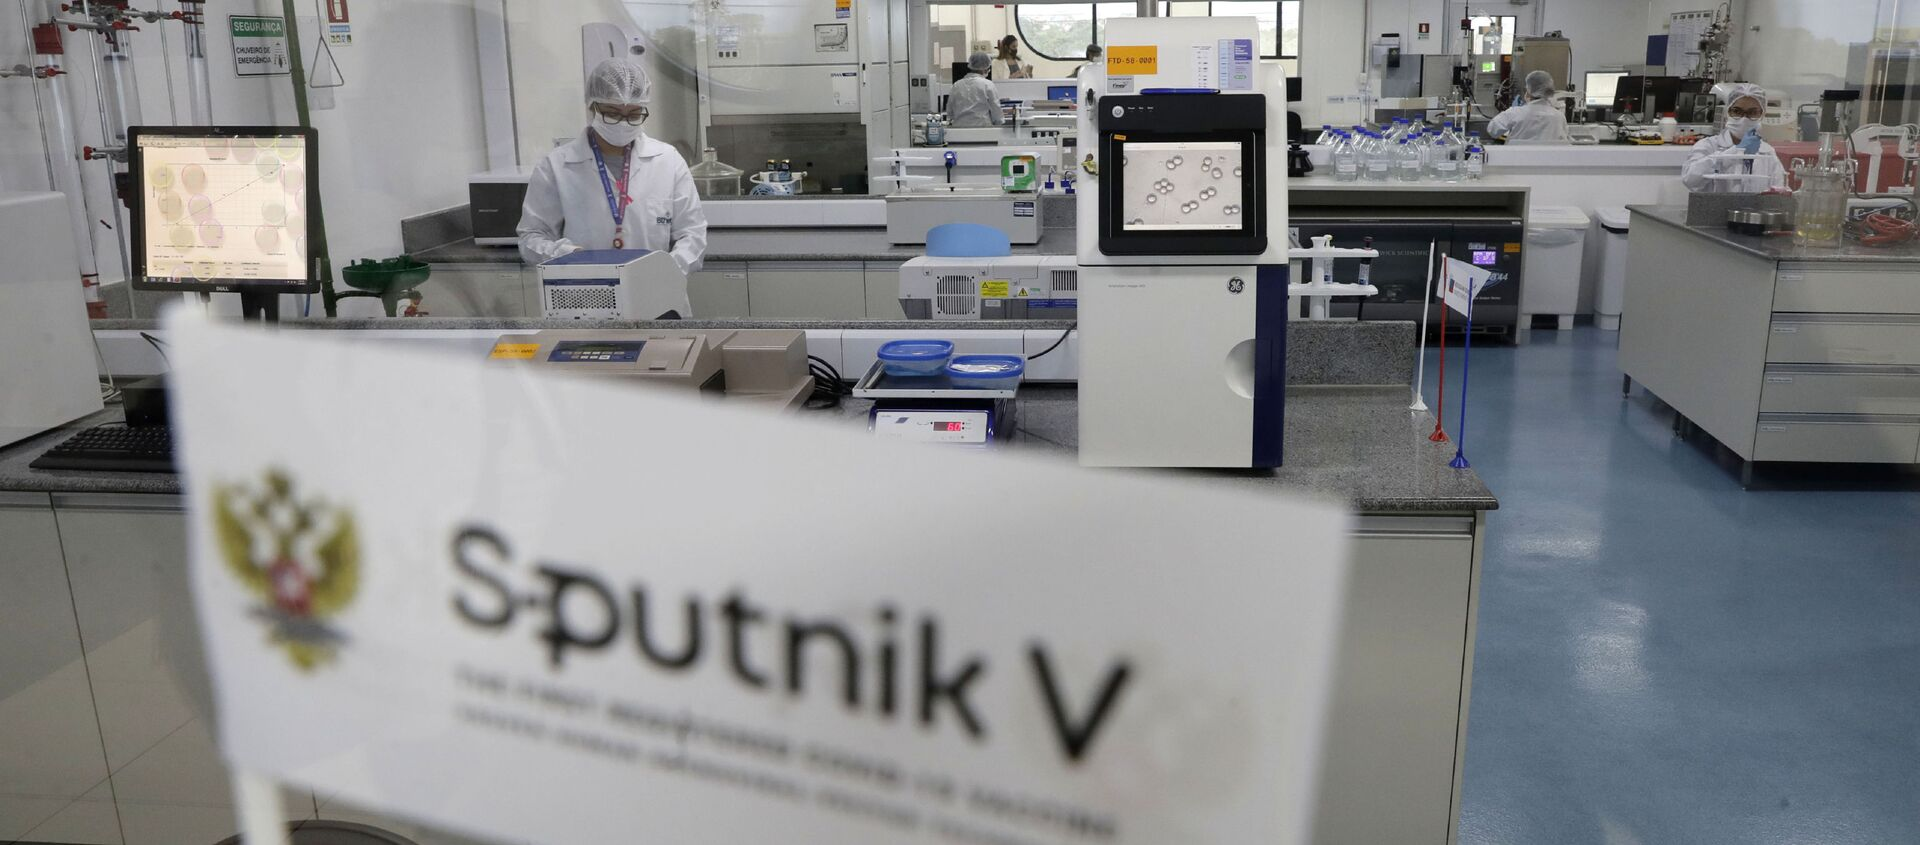 Laboratory workers work in the pilot production phase of Russia's Sputnik V Coronavirus vaccine for COVID-19 at the pharmaceutical company Uniao Quimica in Brasilia, Brazil, Monday, Jan. 25, 2021. - Sputnik International, 1920